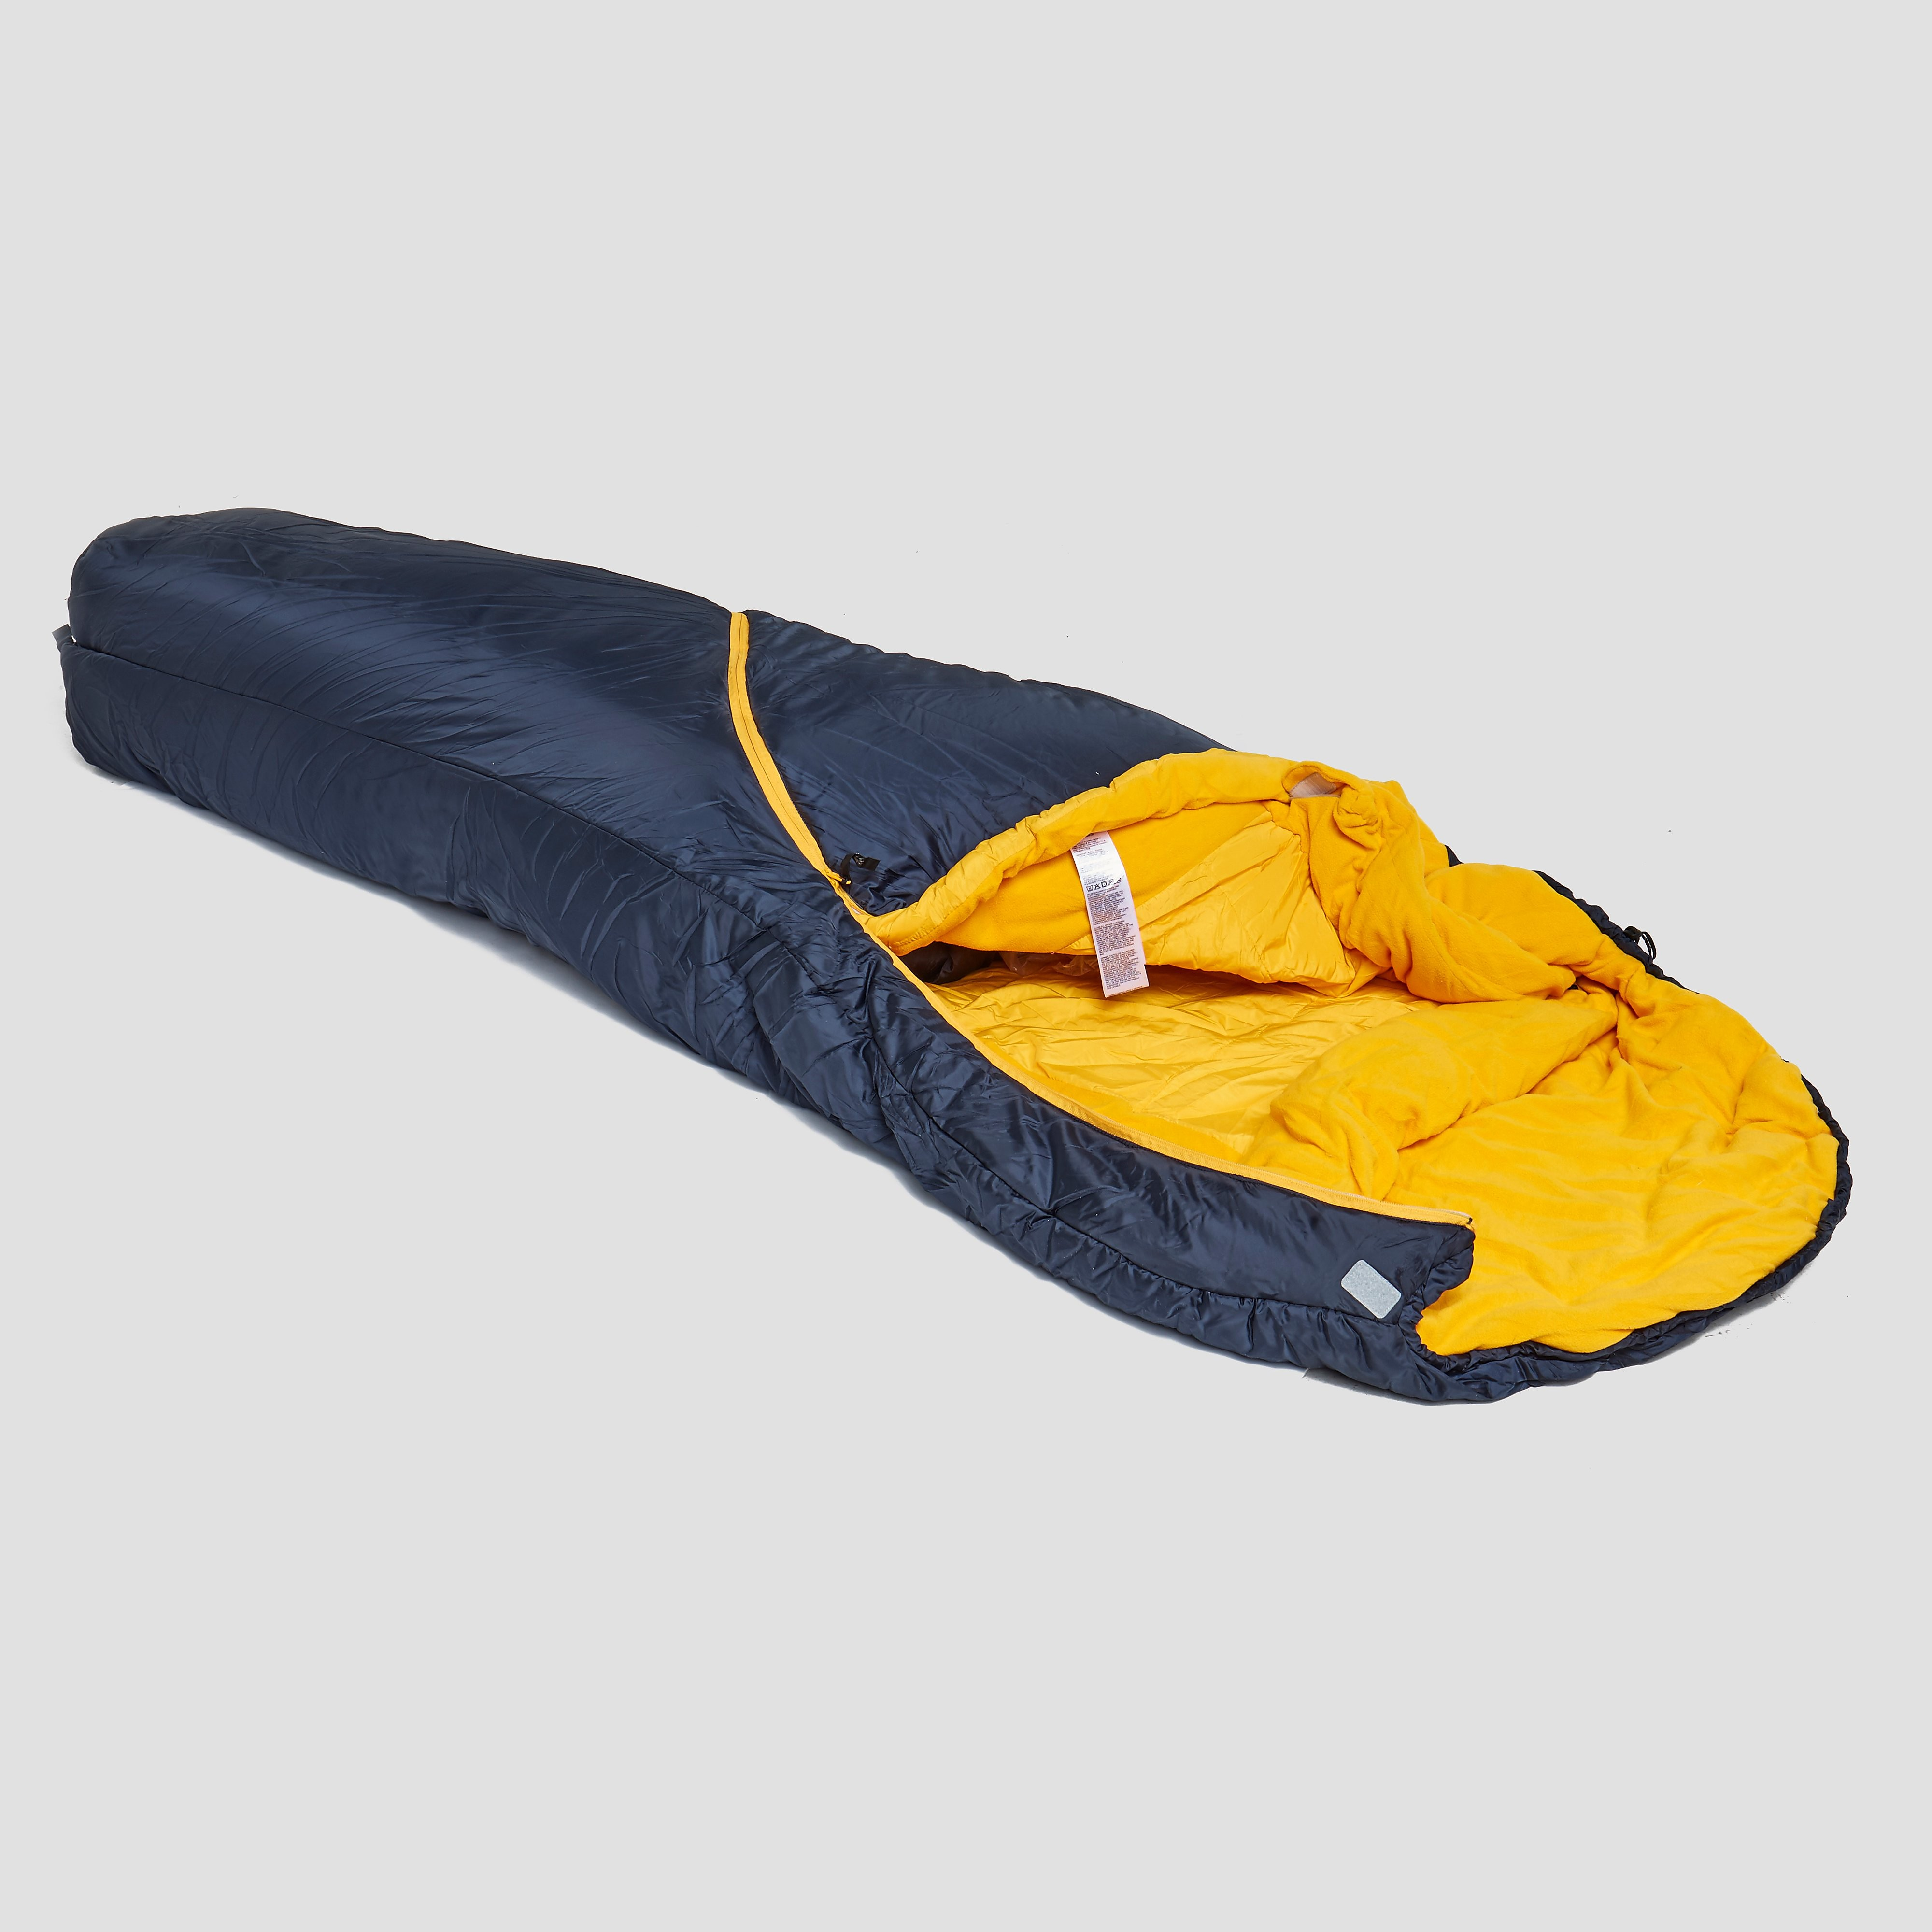 Jack Wolfskin Women's Smoozip -5 Sleeping Bag